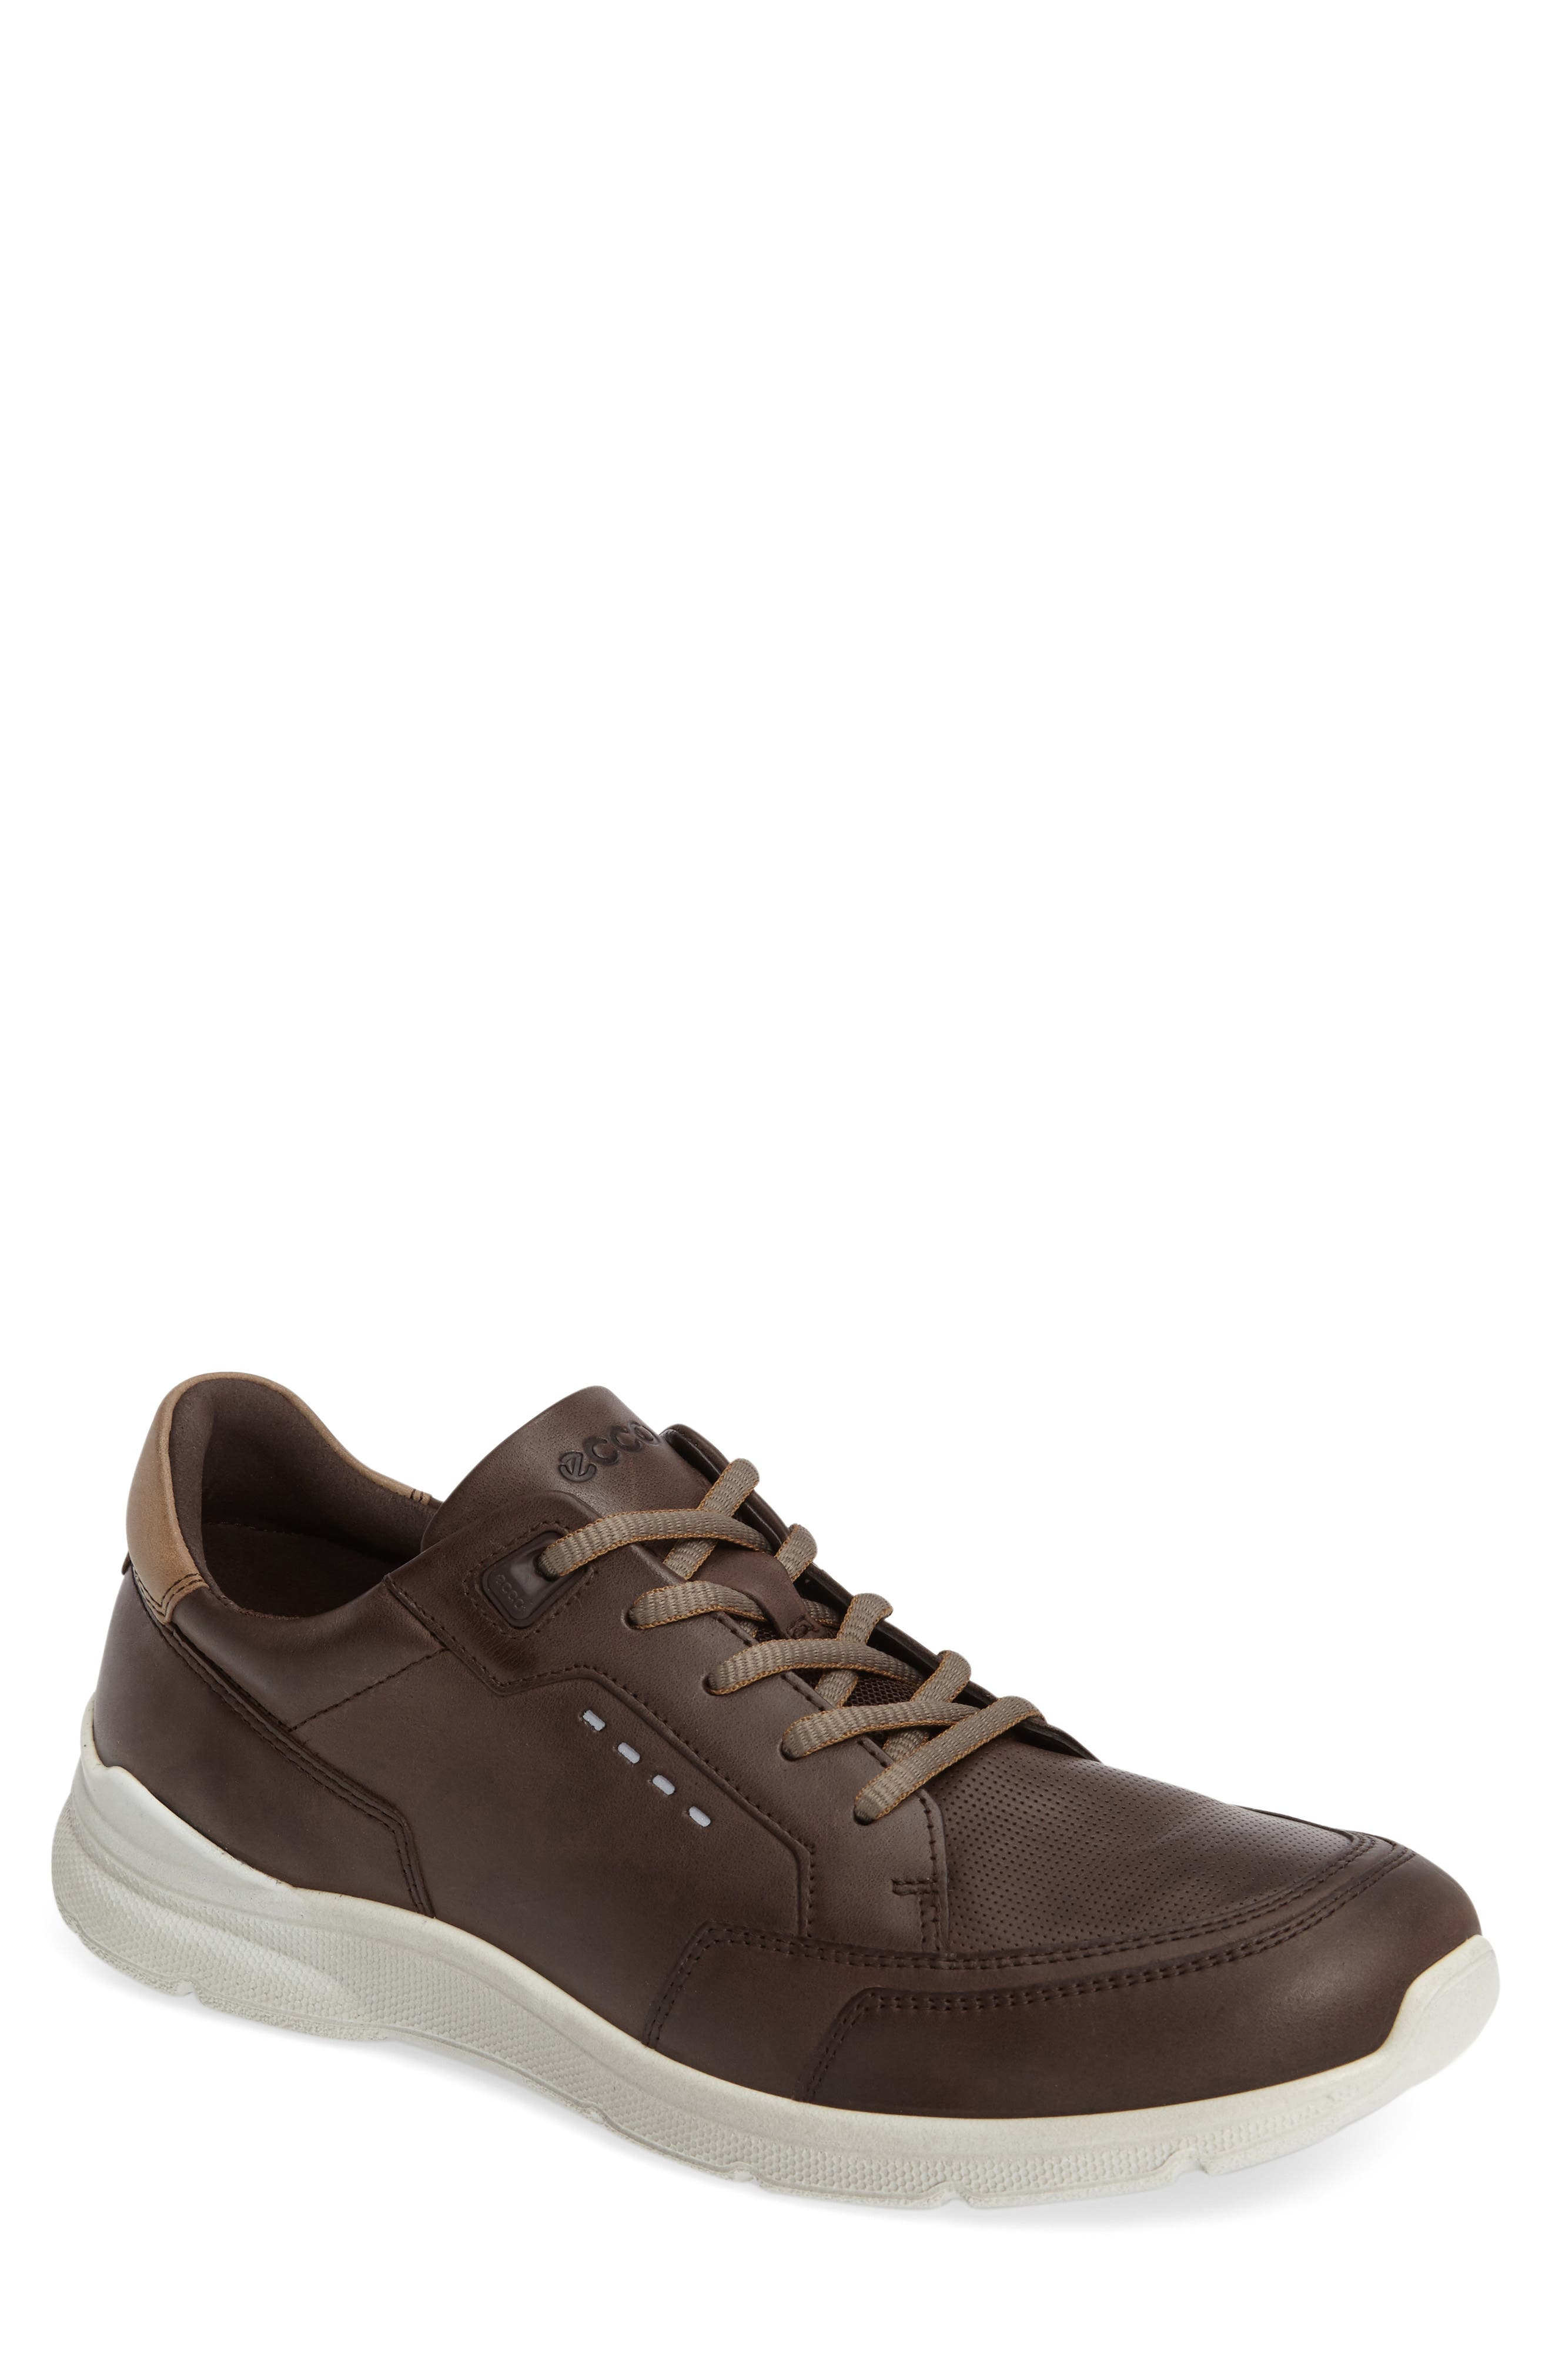 irondale guys ★ ecco 'irondale retro' high top sneaker (men) @ sale price mens comfort shoes, find great deals on the latest styles compare prices & save money [ecco 'irondale retro' high top sneaker.